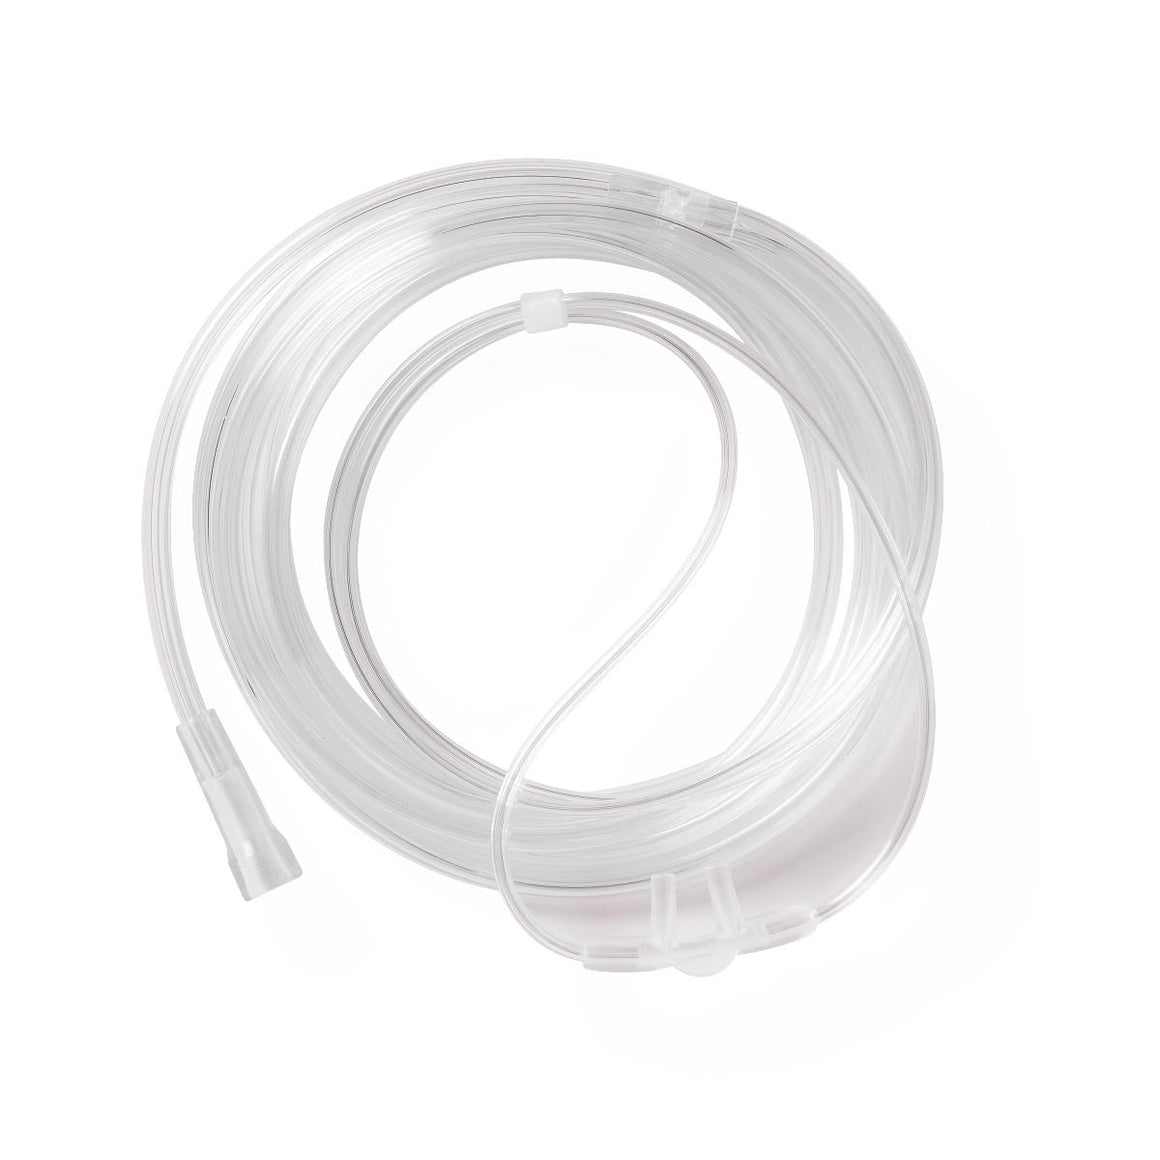 Adult Cannula Crush-Resistant Tubing,Adult, Each